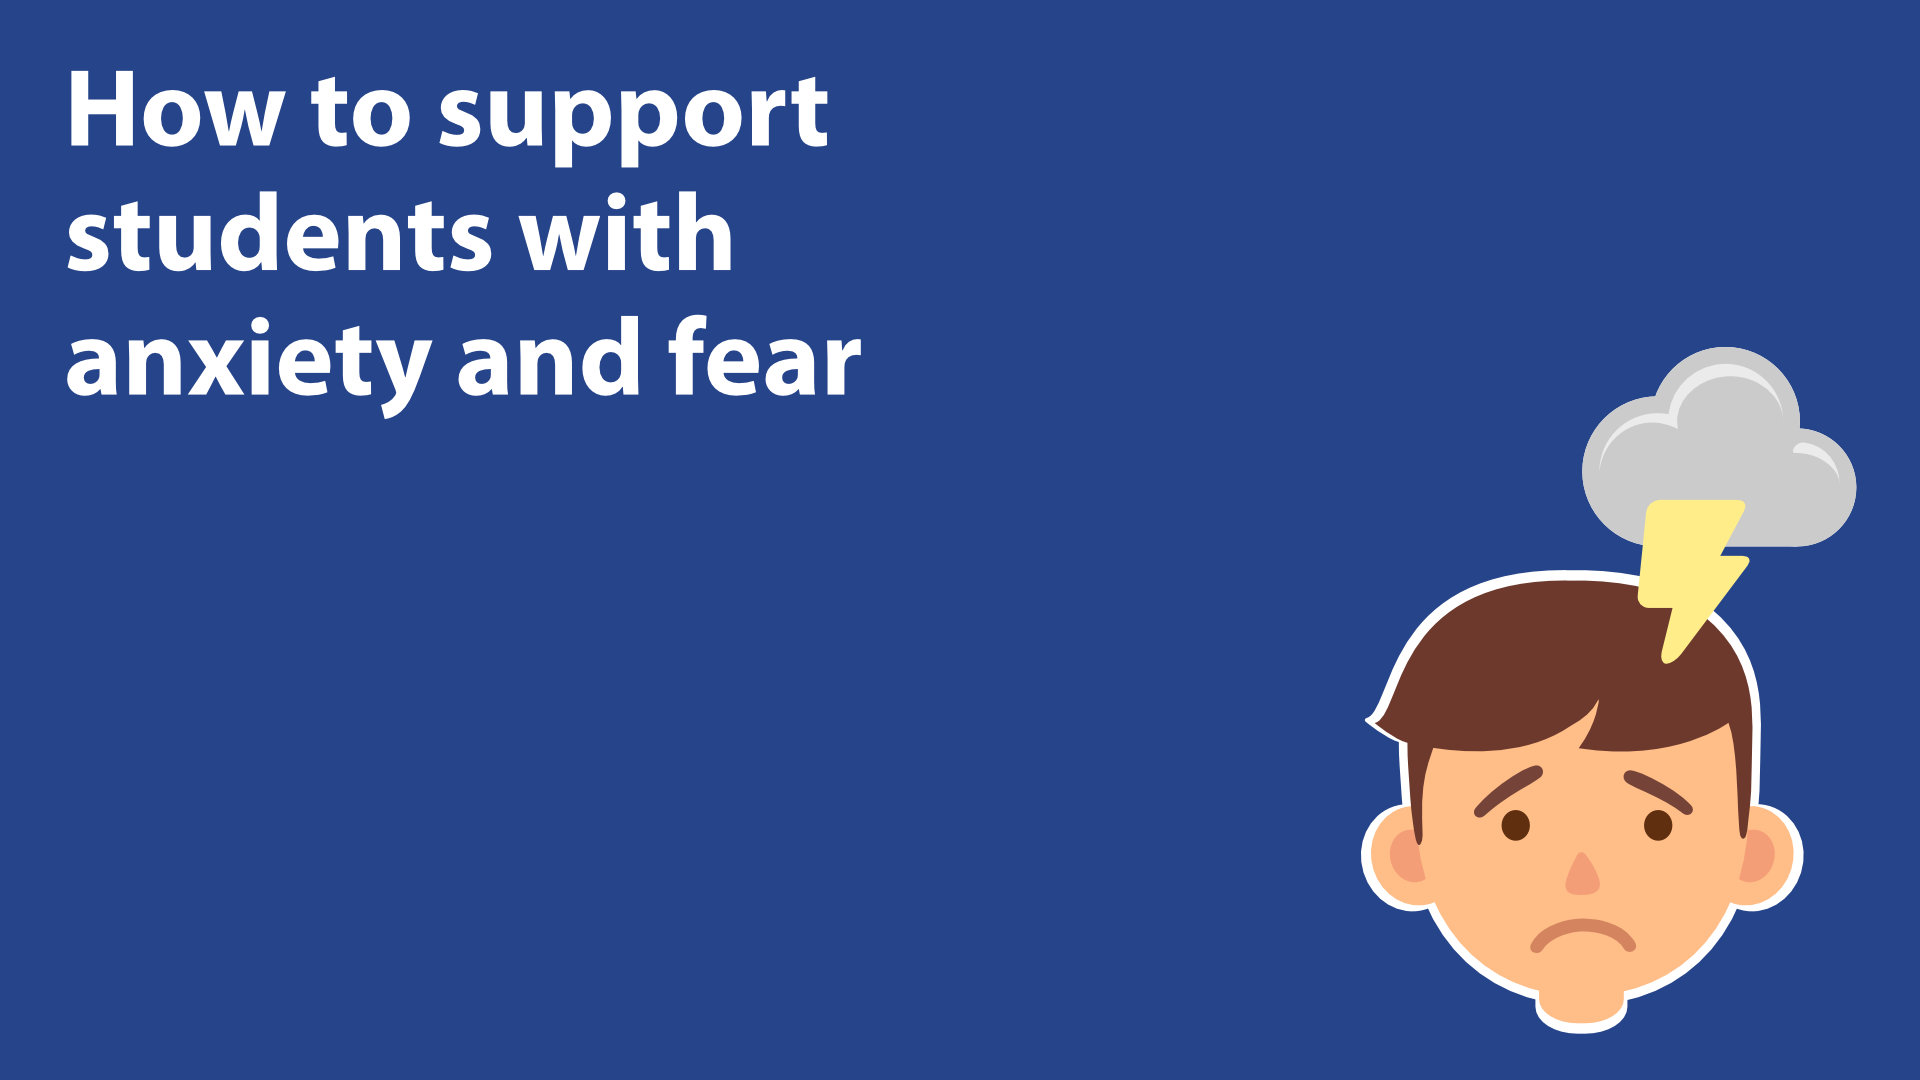 How To Support Students With Anxiety And Fear image